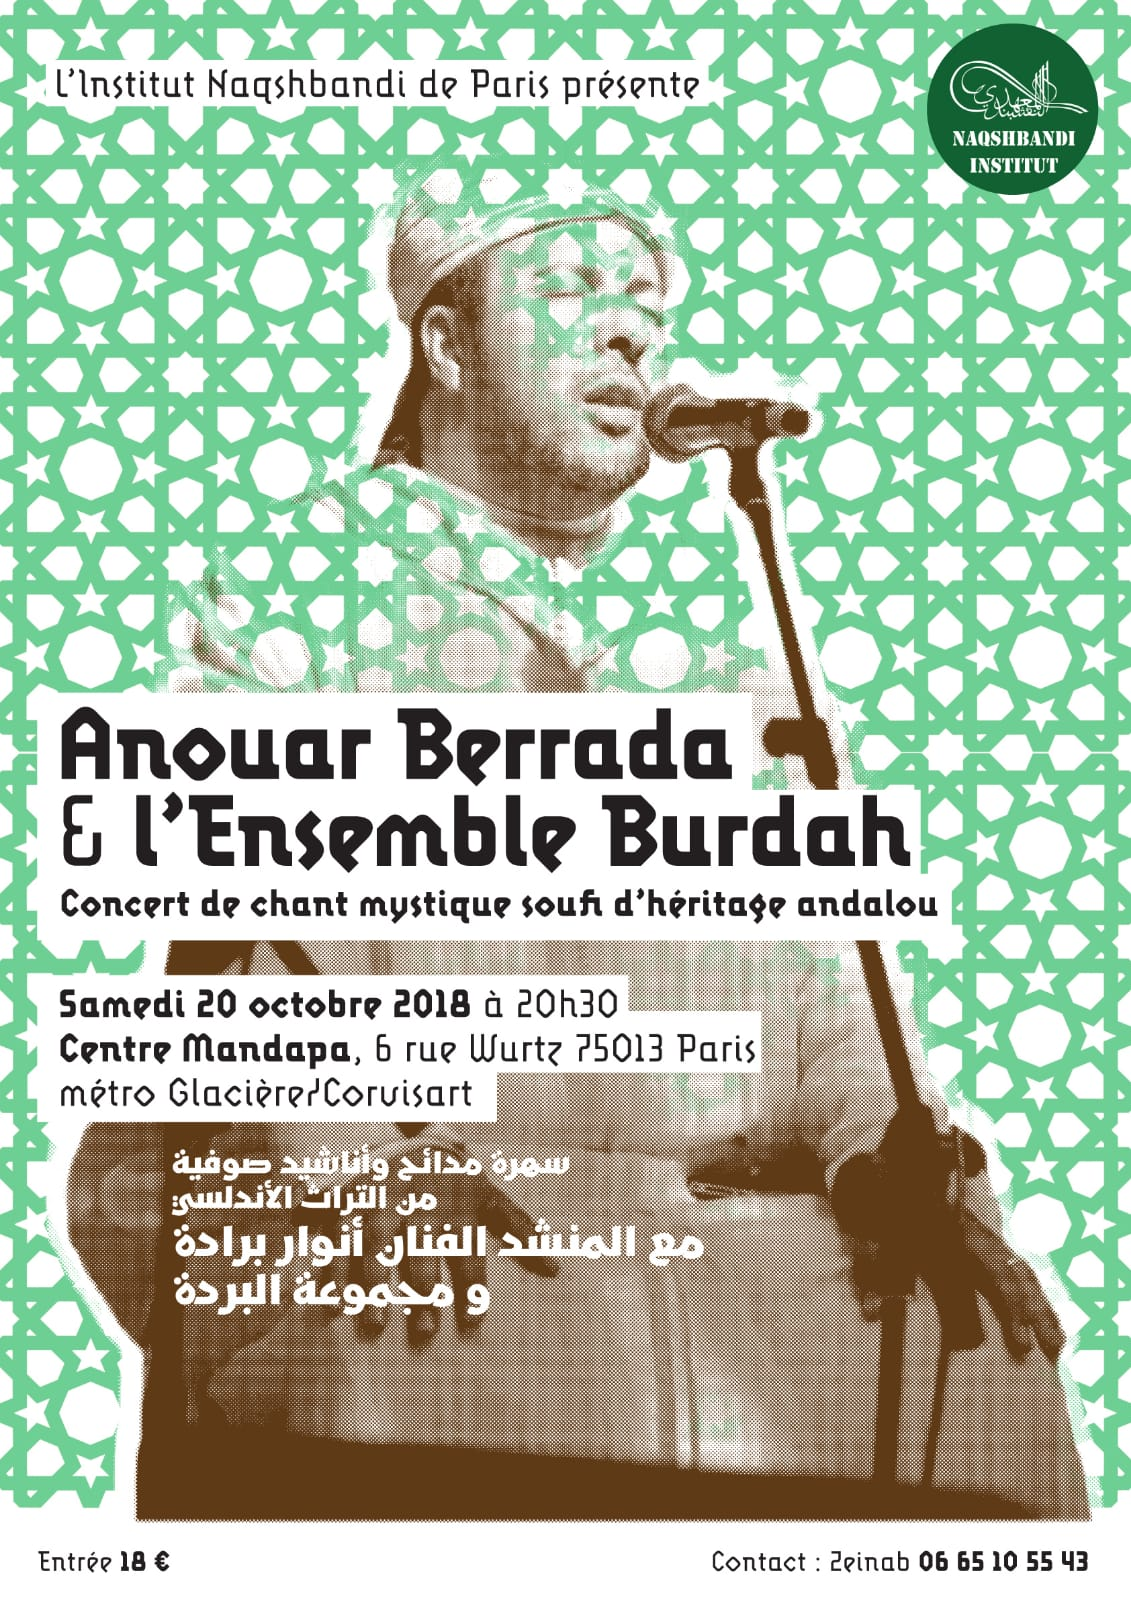 https://www.saphirnews.com/agenda/Anouar-Barrada-l-ensemble-Burdah_ae608301.html